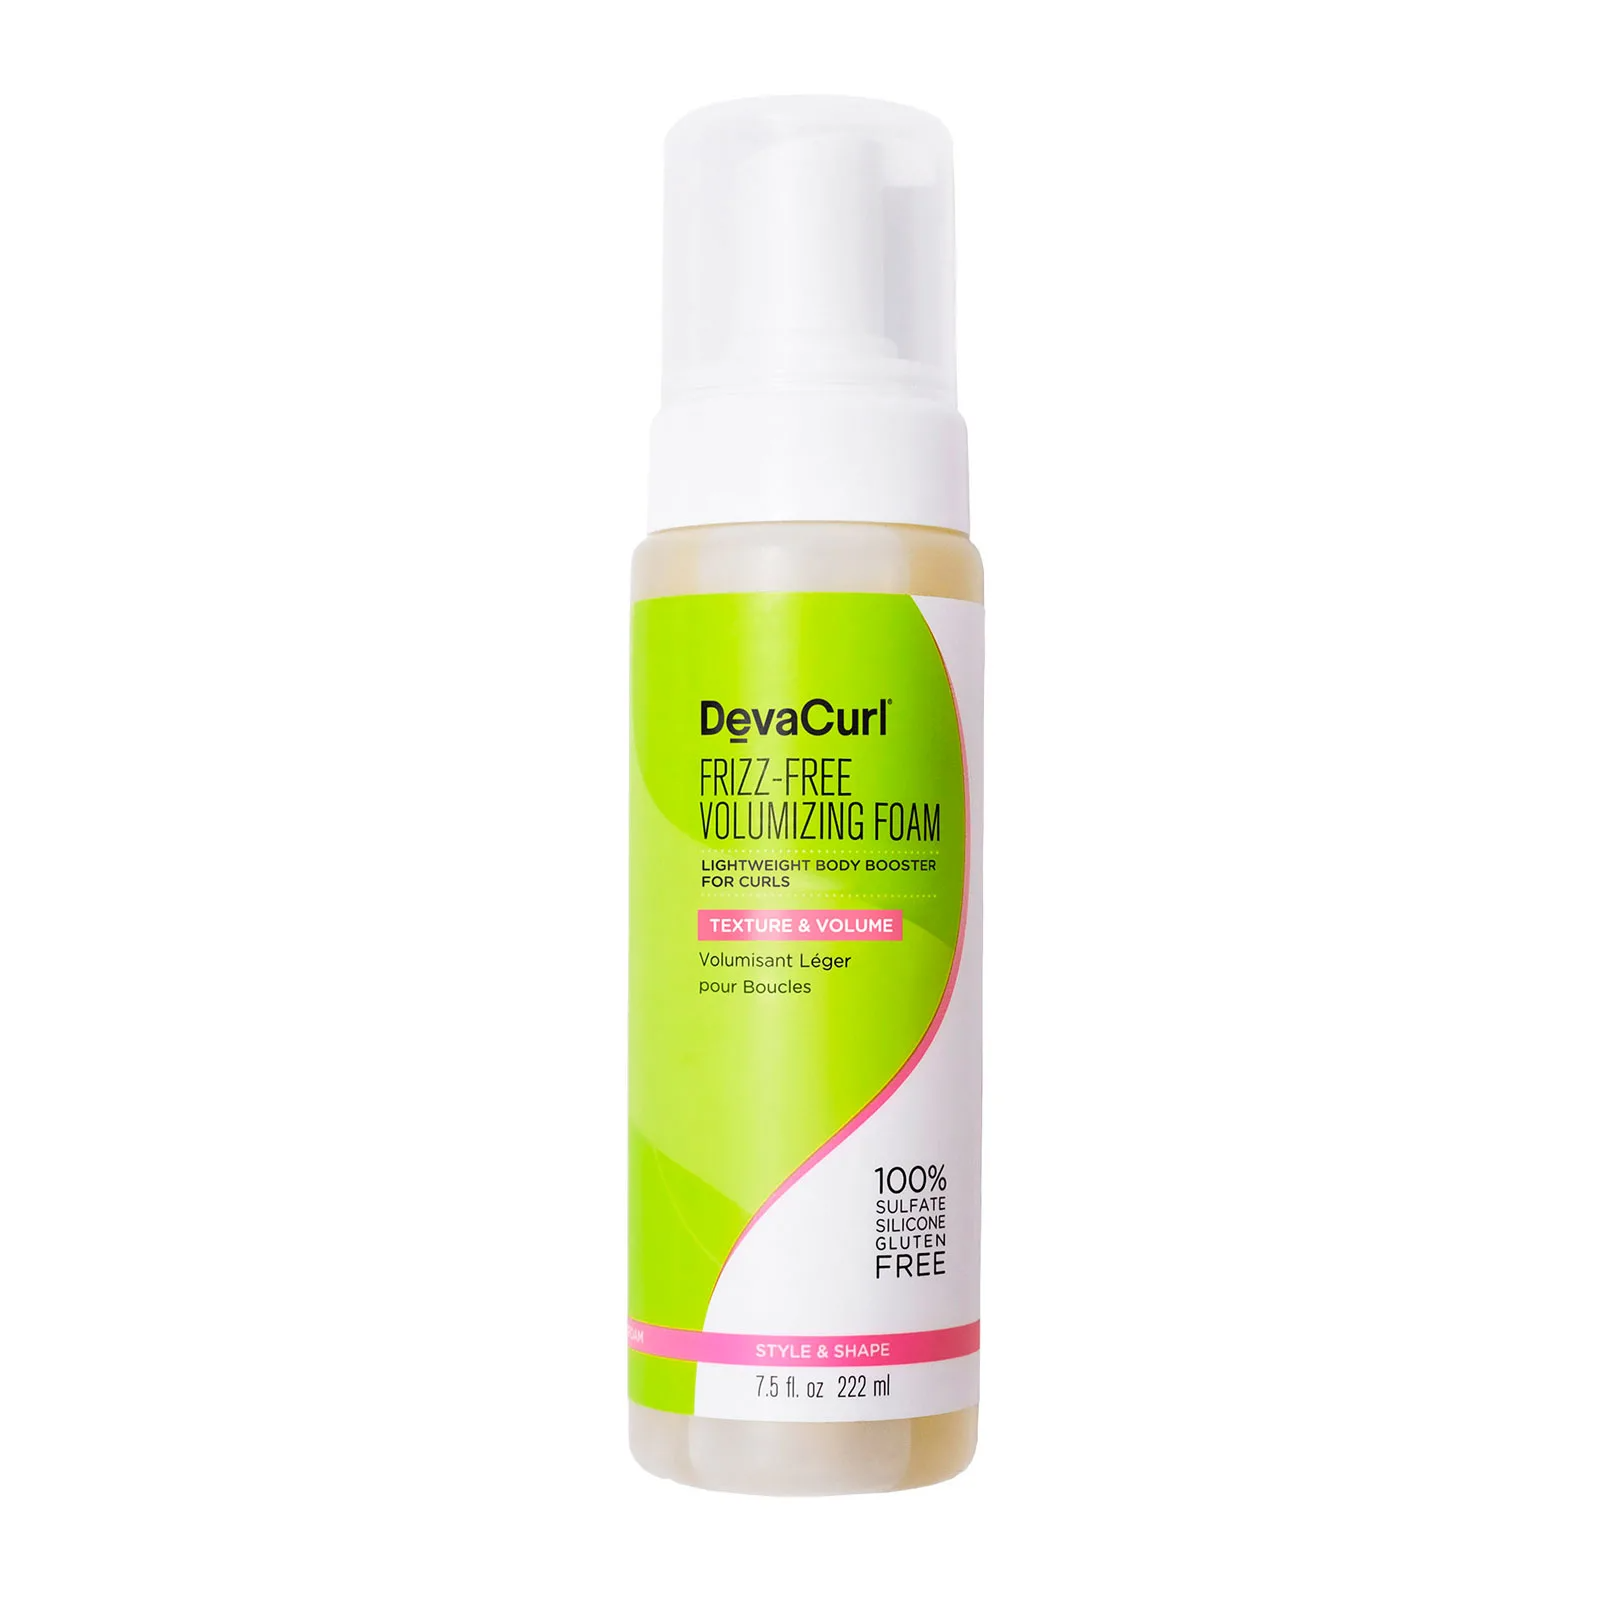 DevaCurl Frizz-Free Volumizing Foam Lightweight Body Booster, 225ml